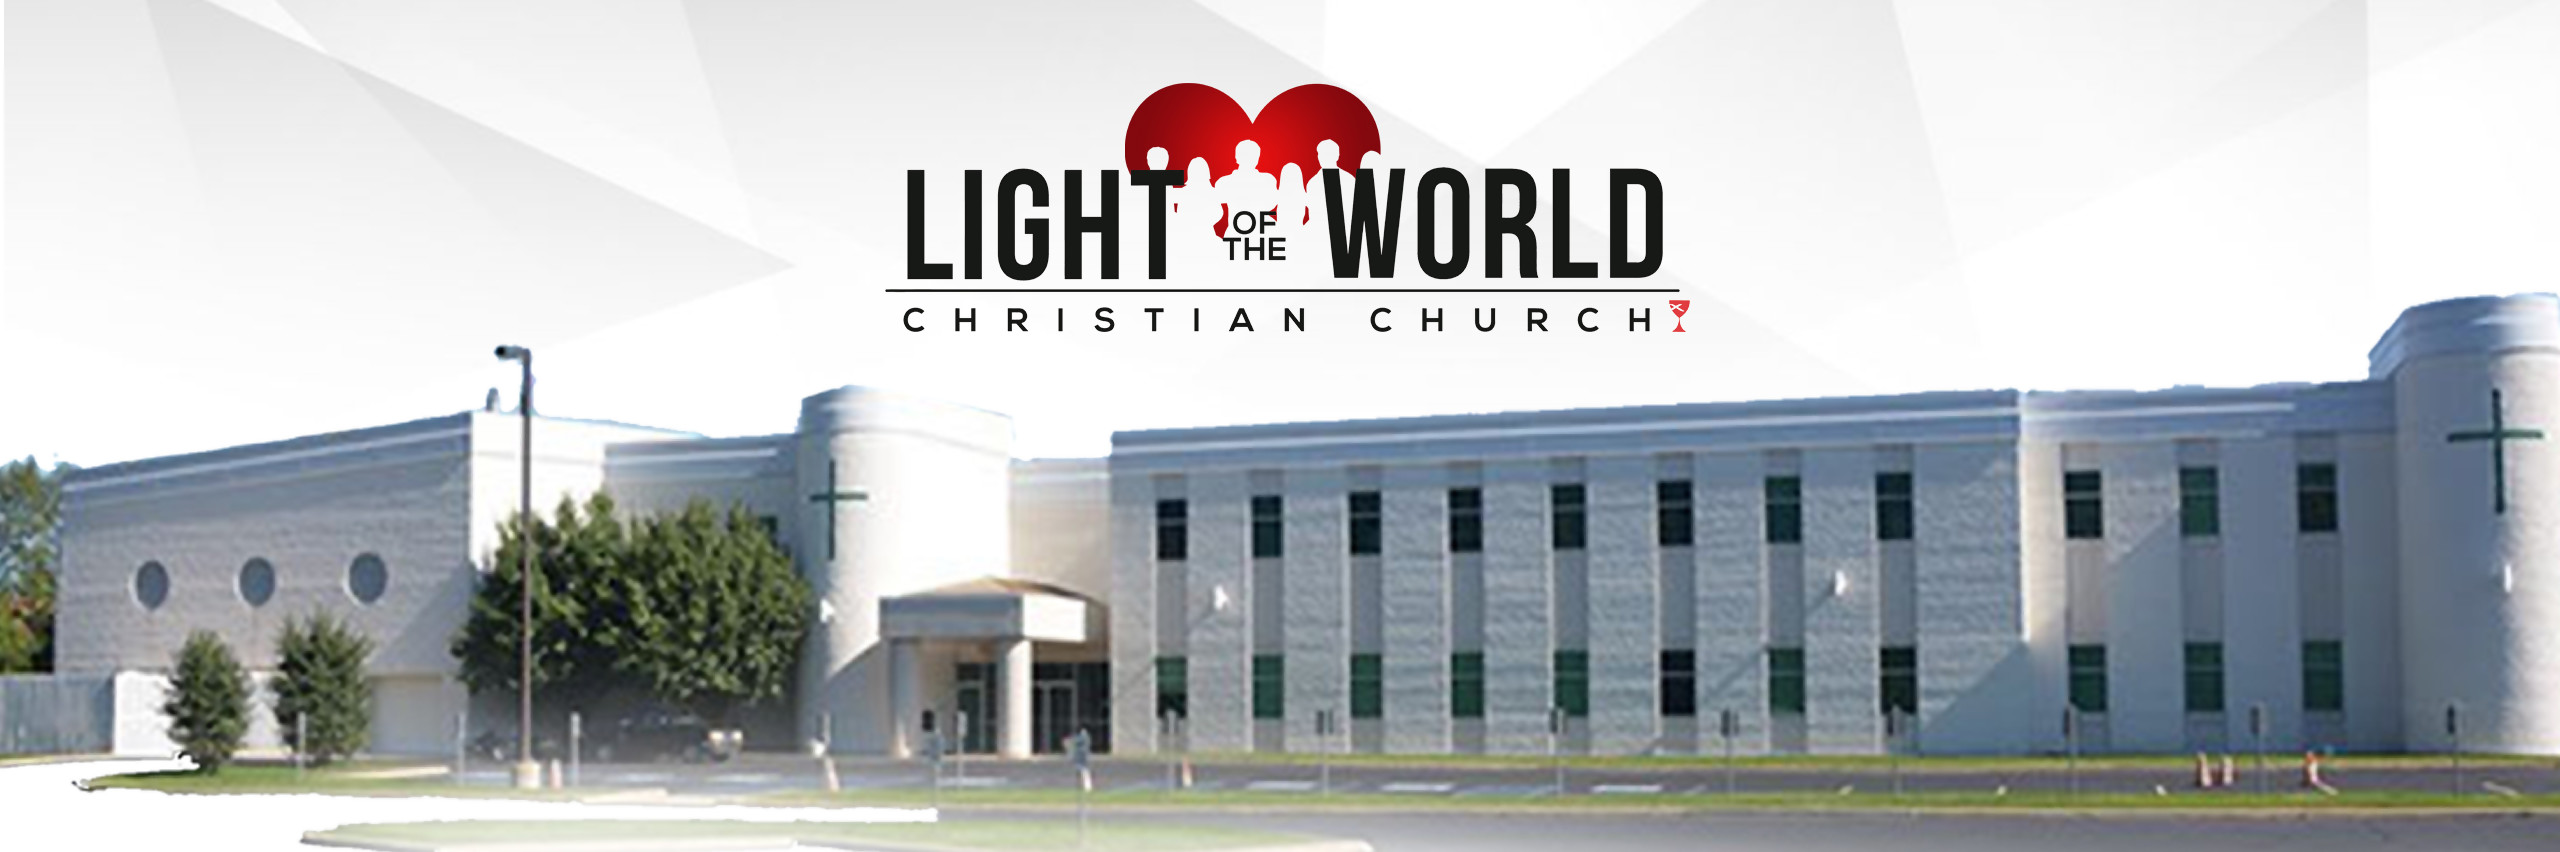 Light Of The World Christian Church